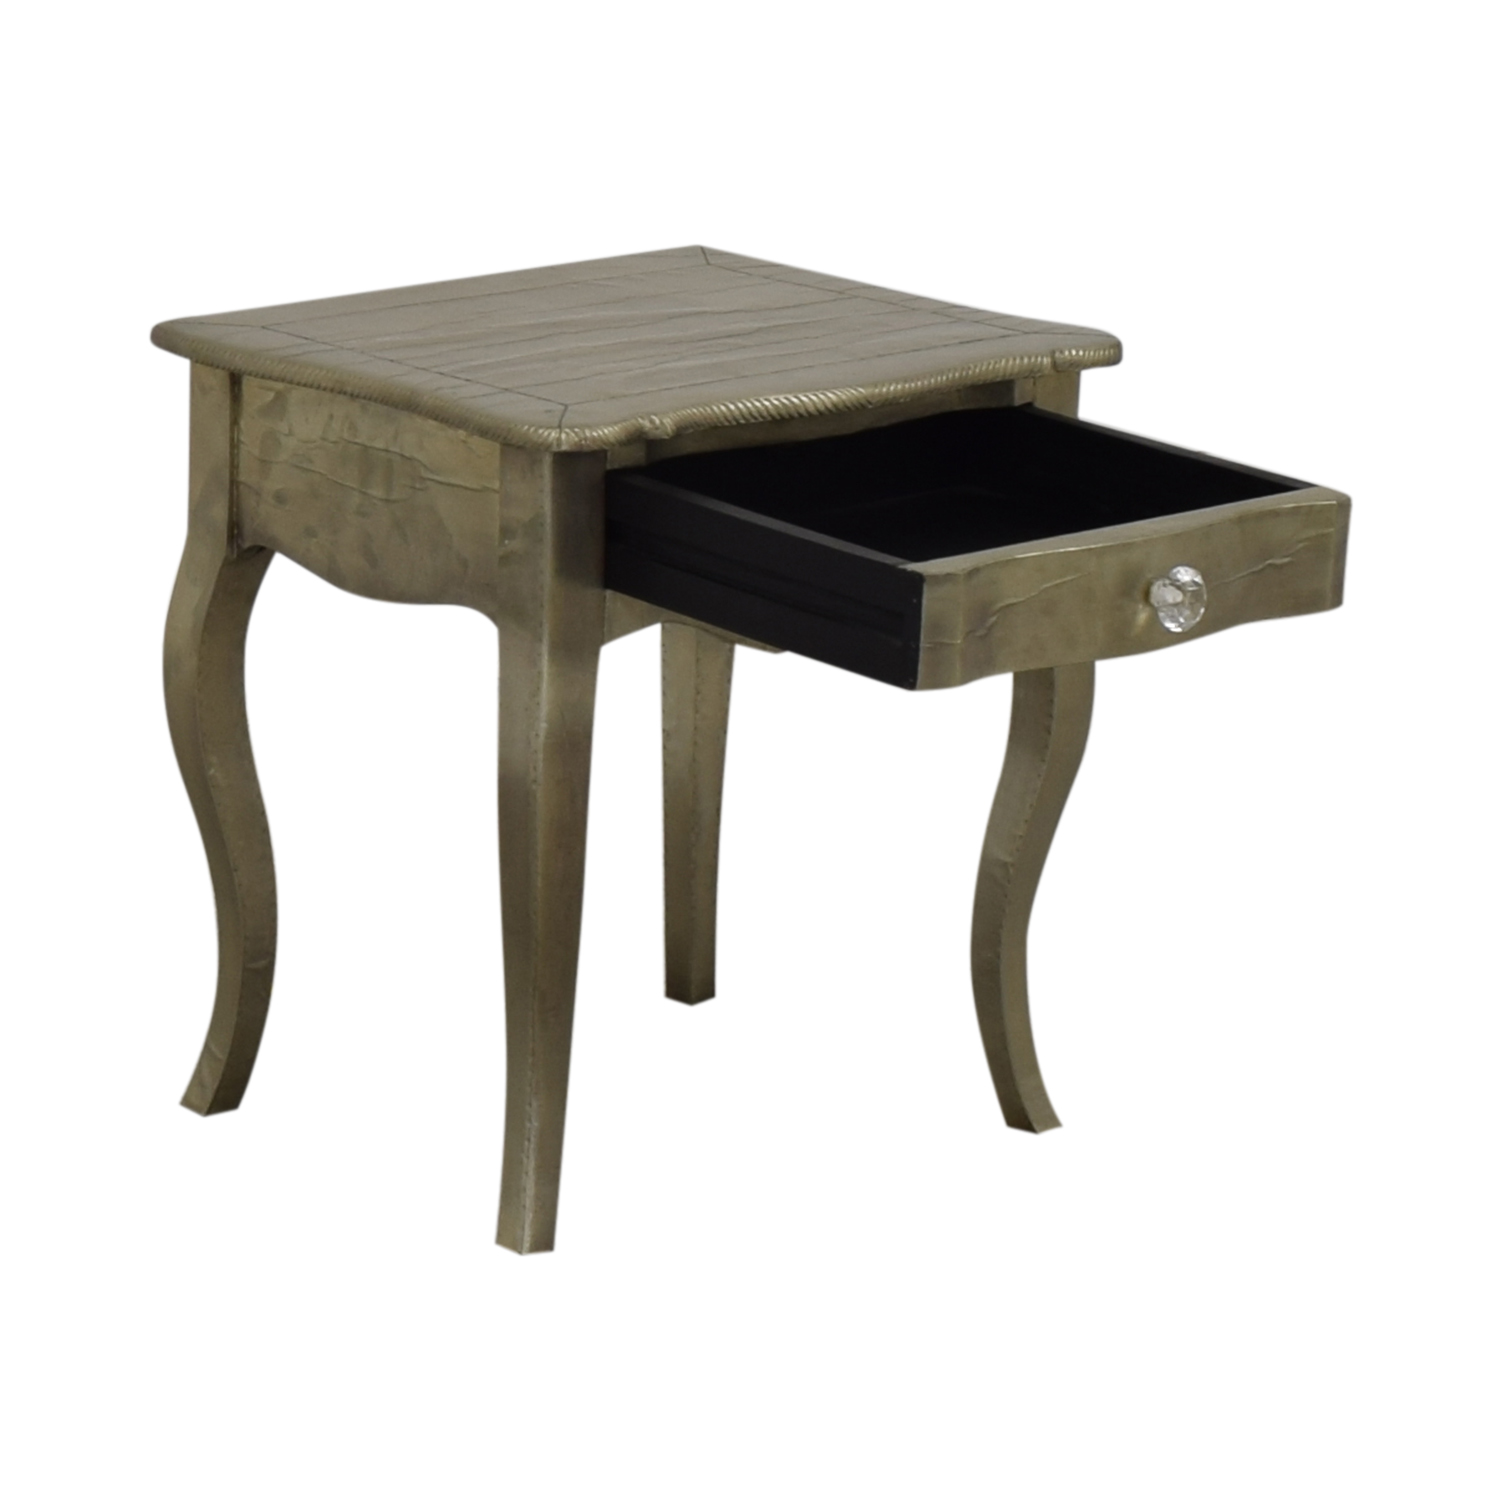 ABC Carpet & Home ABC Carpet & Home Wood Silver Leaf Bedside Table silver